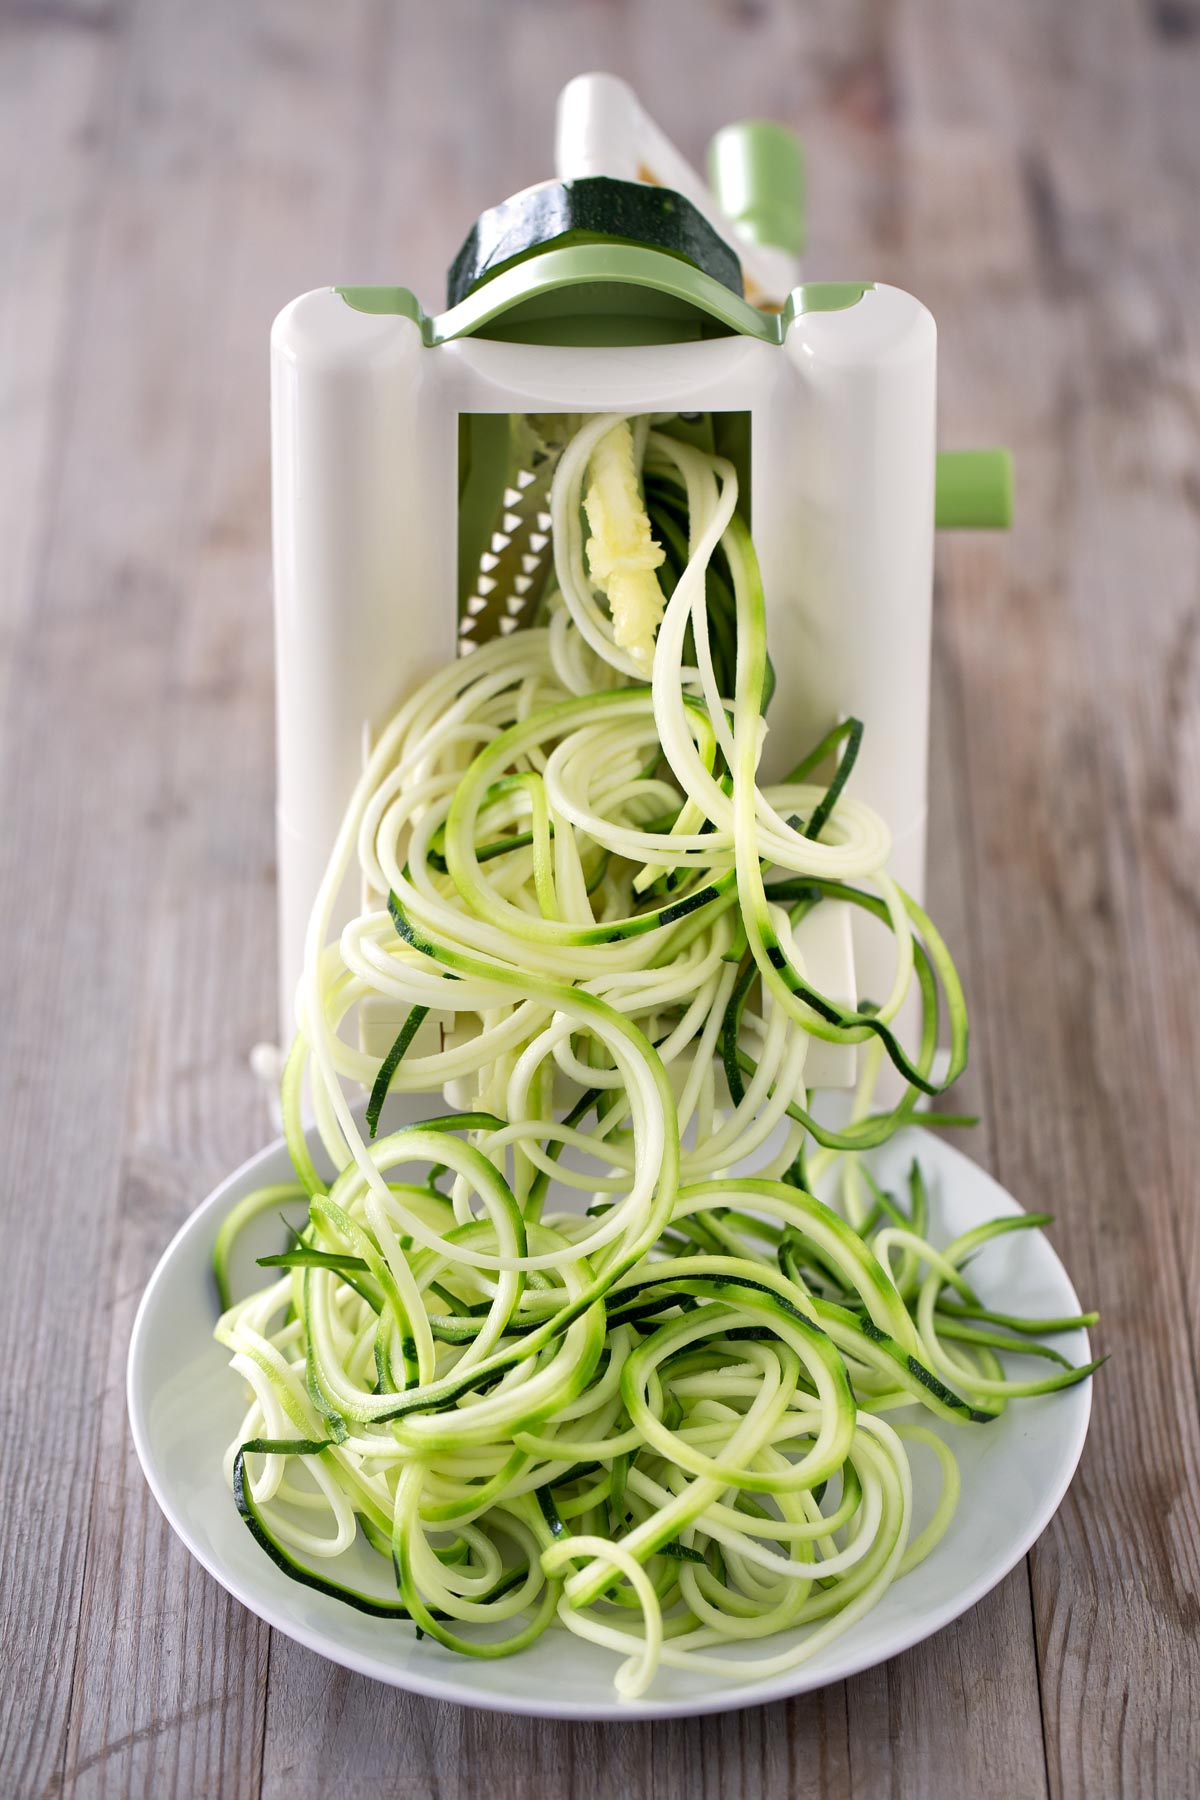 Spirali Zoodles